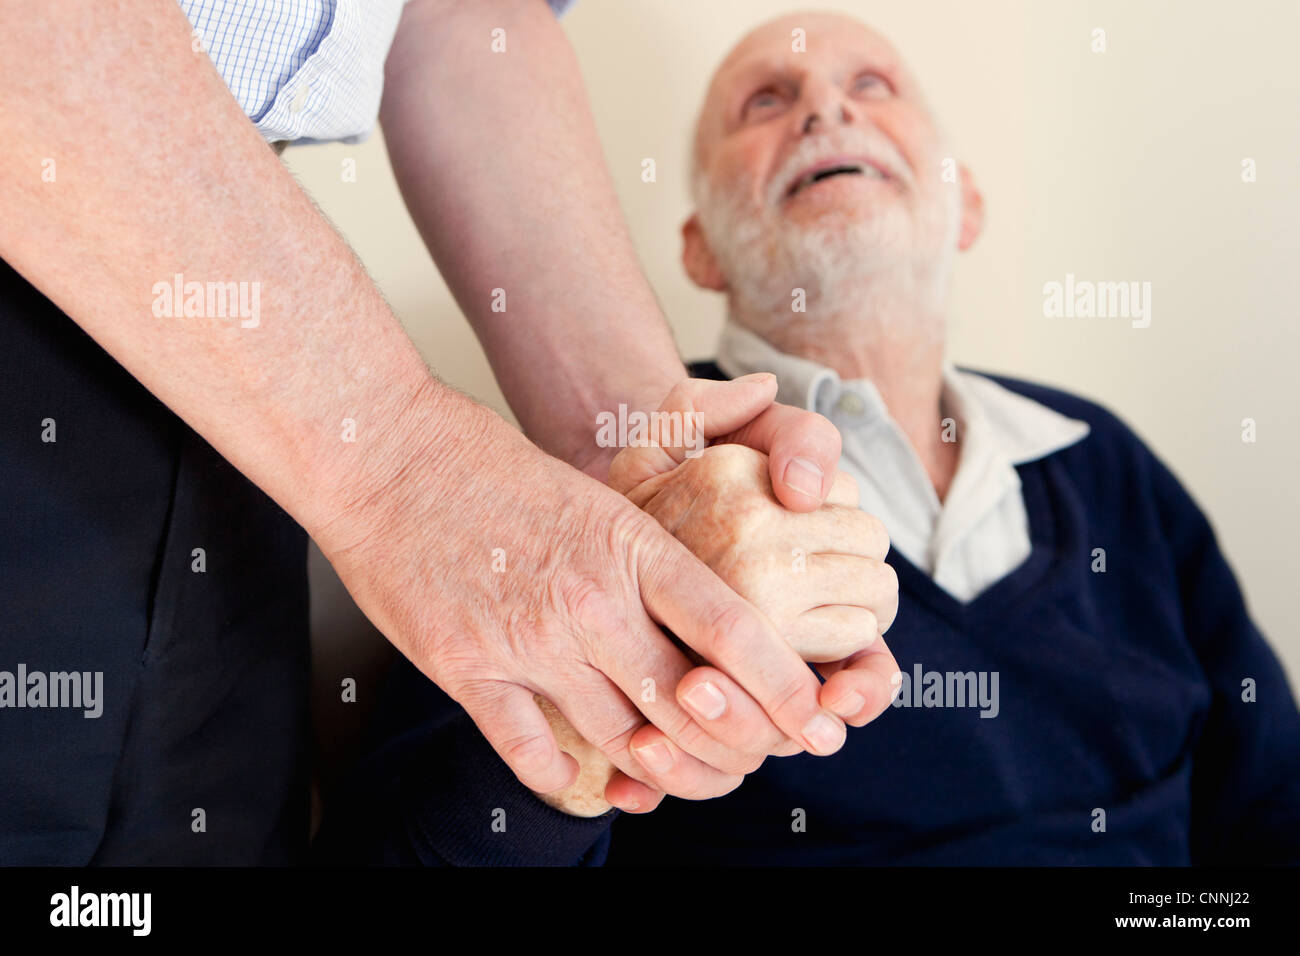 Son patting father's hand - Stock Image